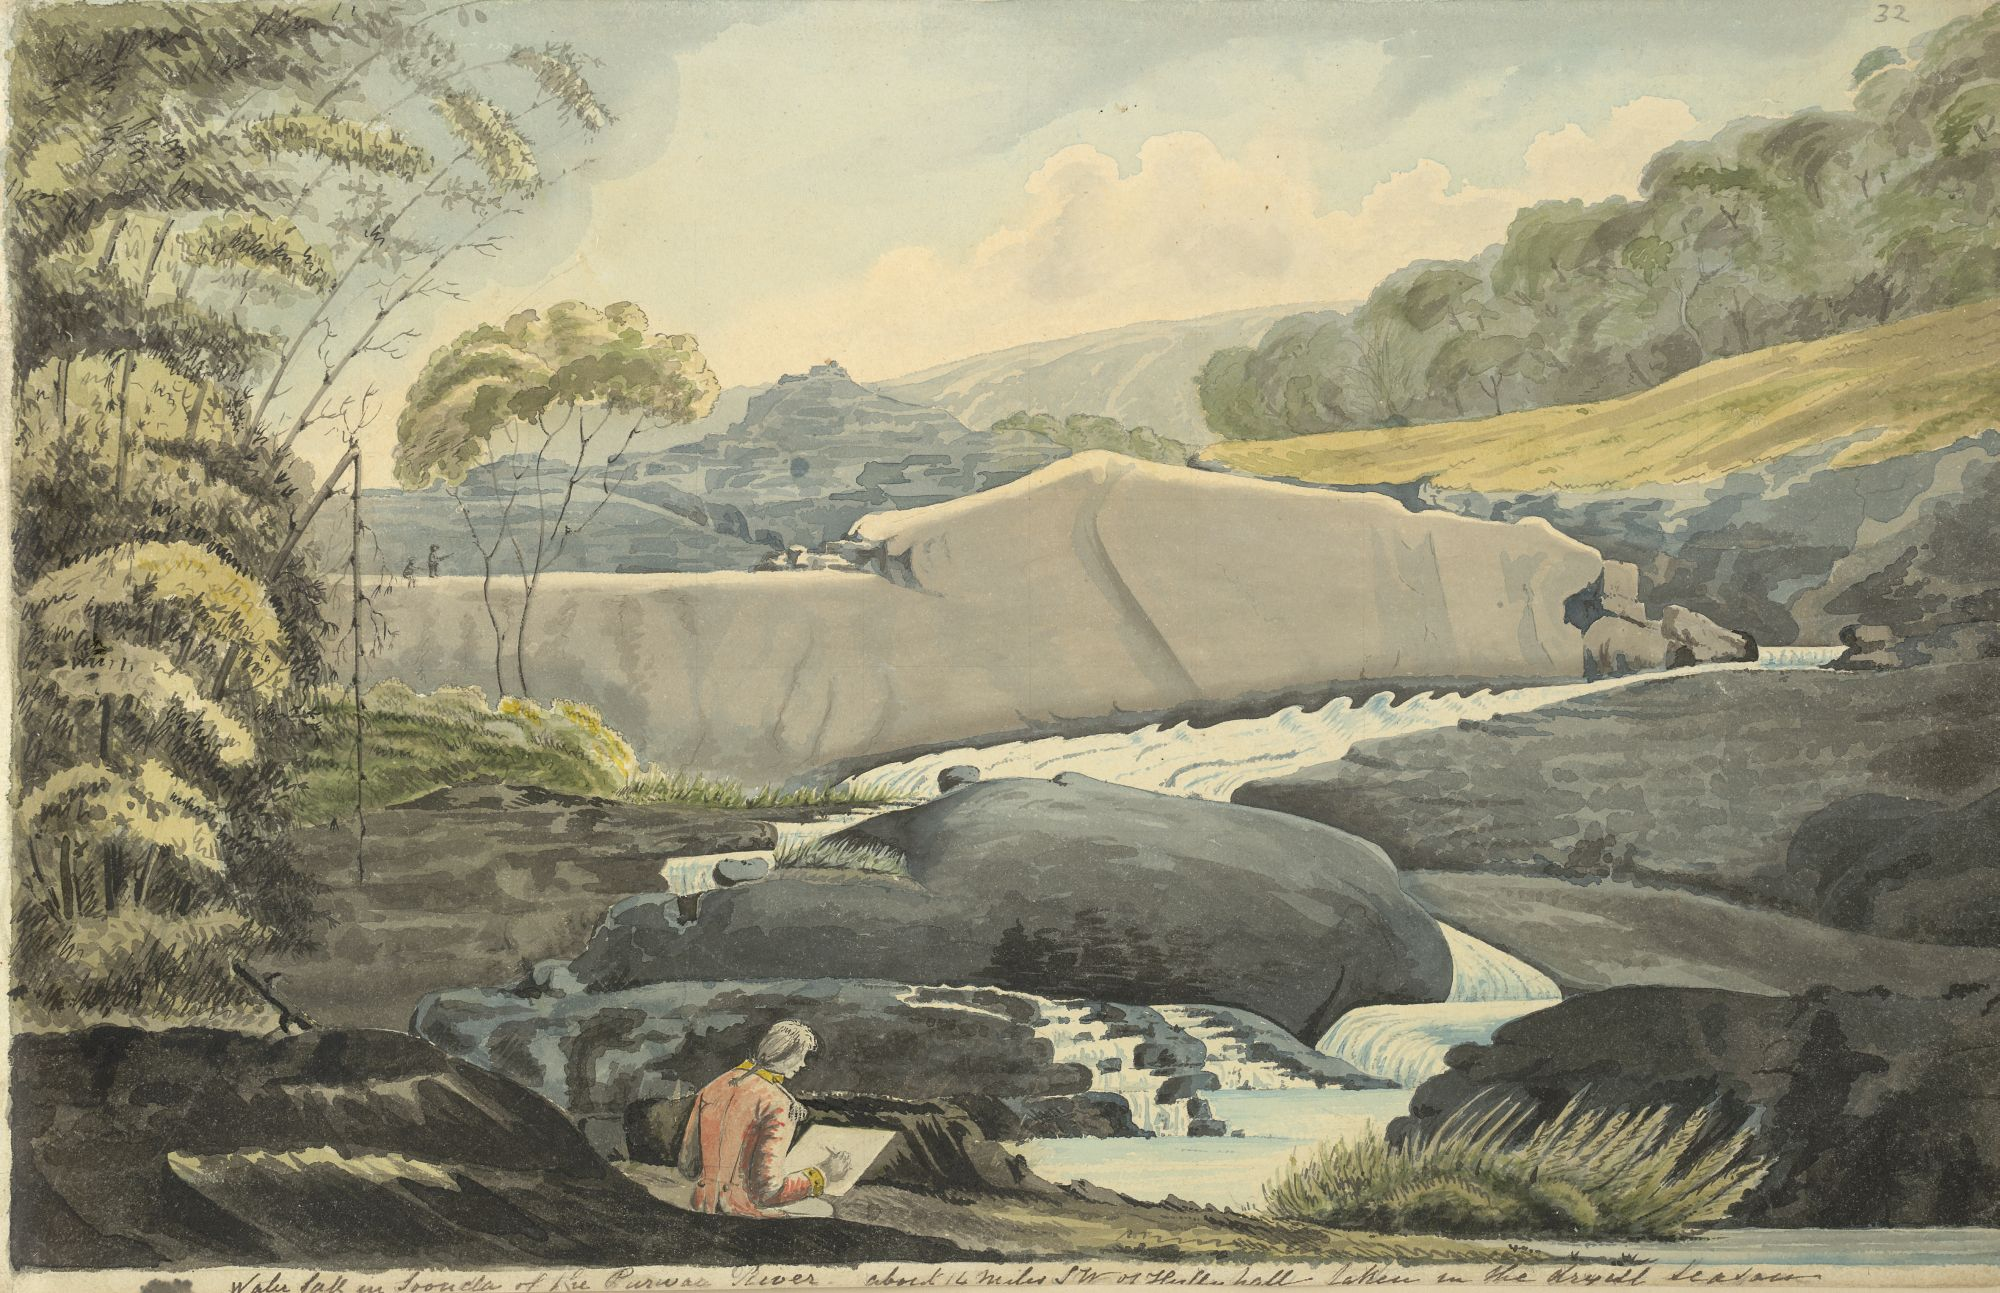 Waterfall near Haliyal with John Johnson sketching in the foreground; a leaf from Johnson's sketchbook